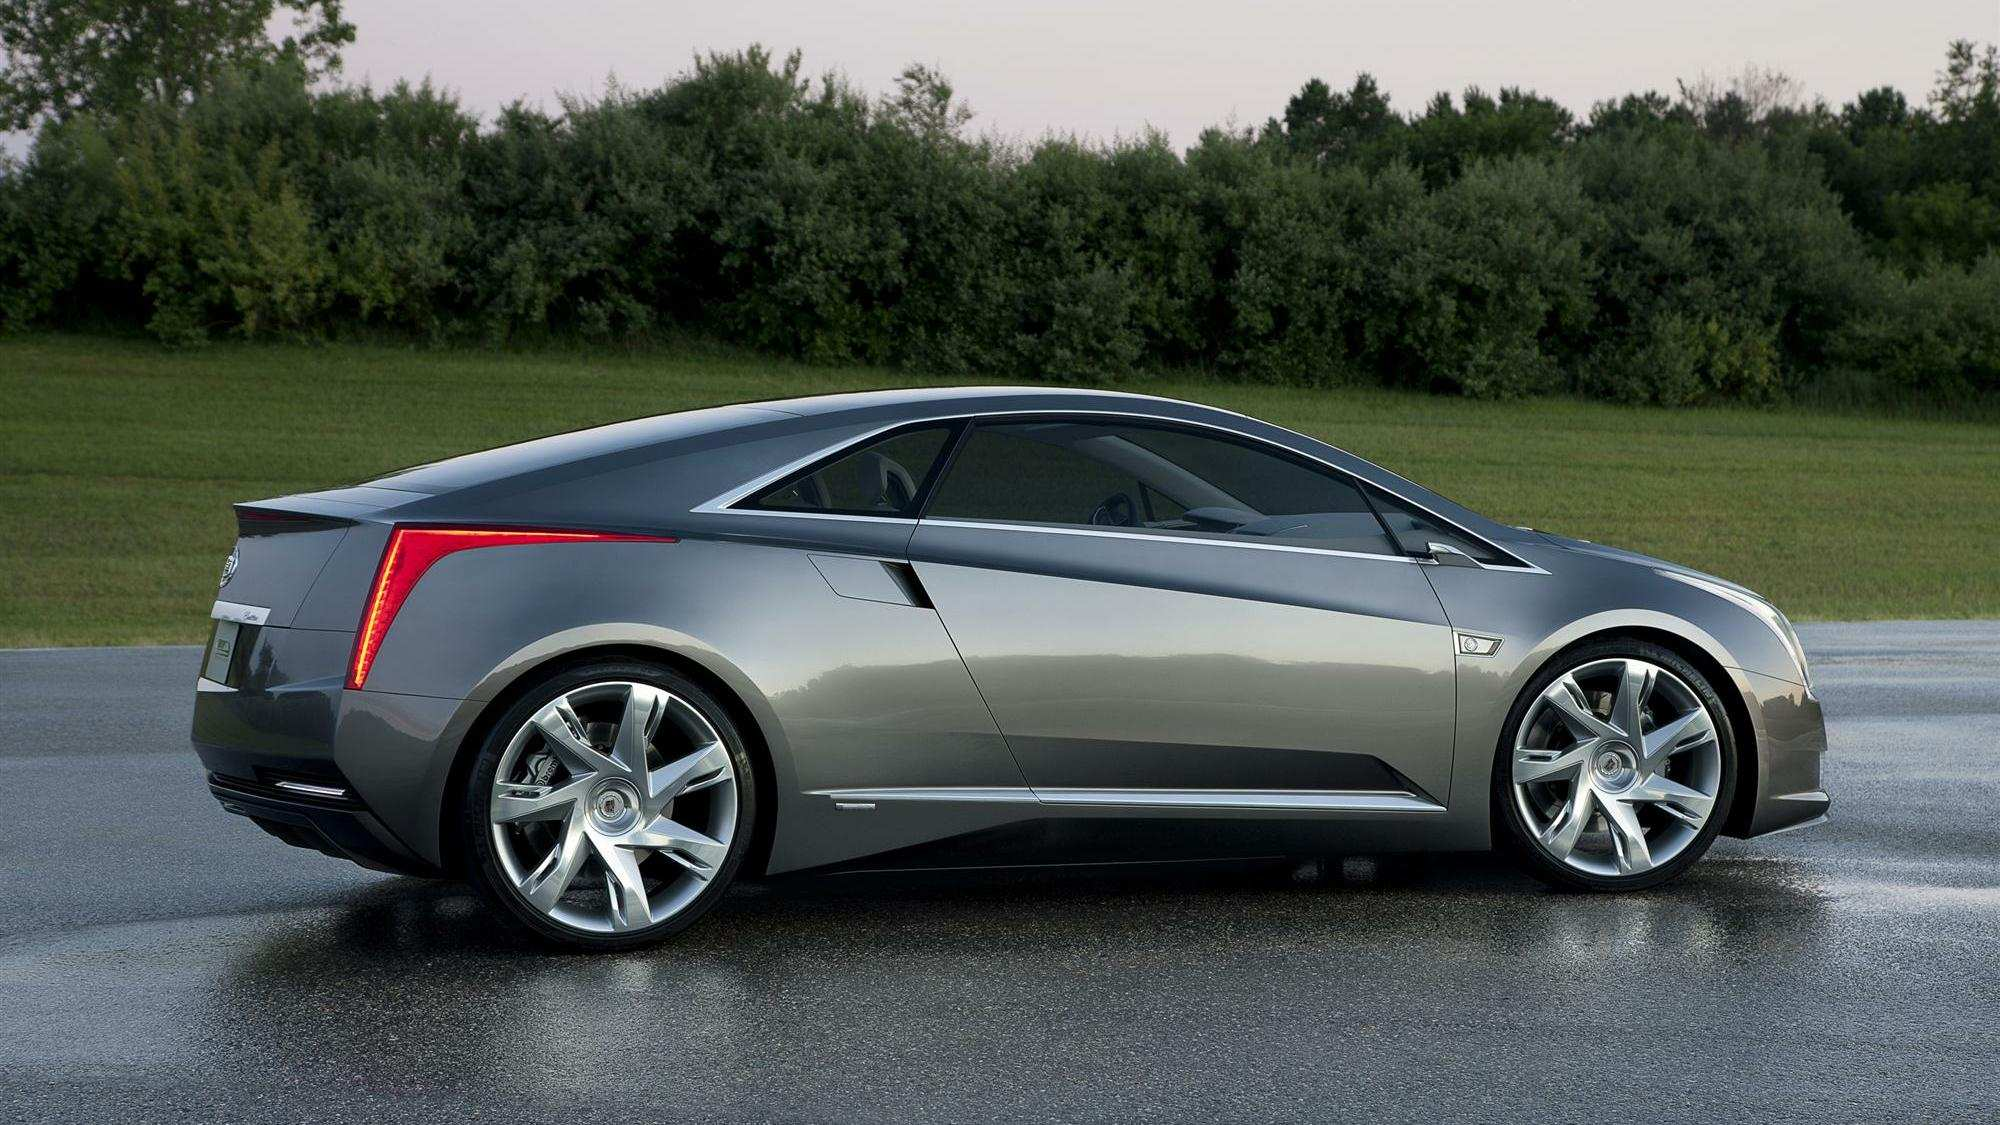 54 Best 2020 Cadillac ELR Images